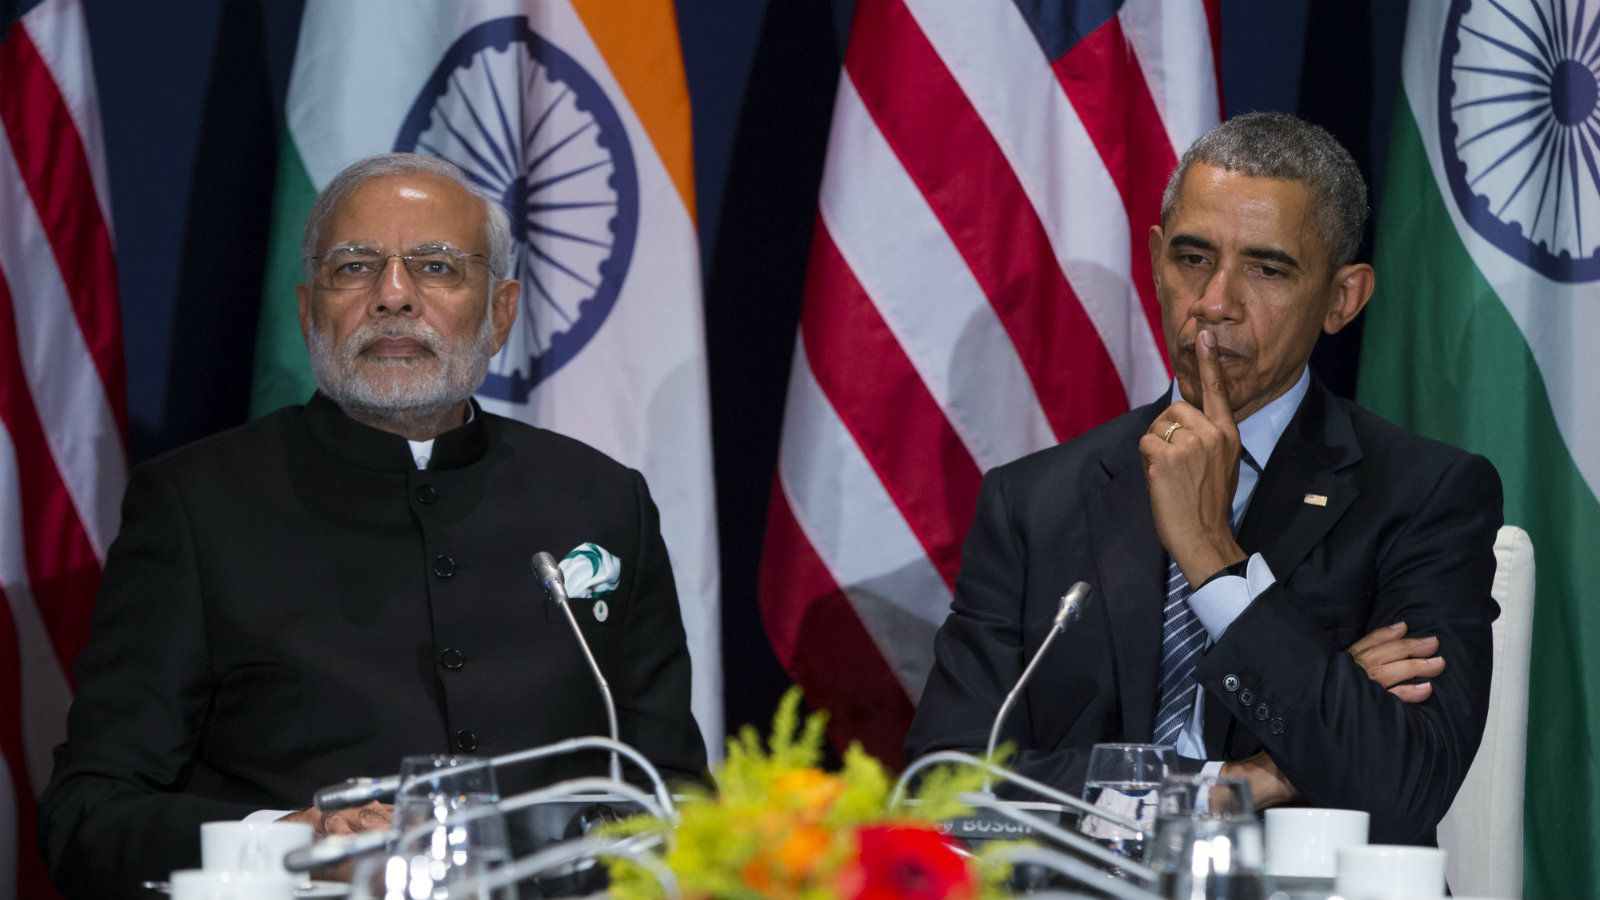 India to Upgrade Its 8-Point Climate Change Proposal To 11-Point for Addressing Climate Goals